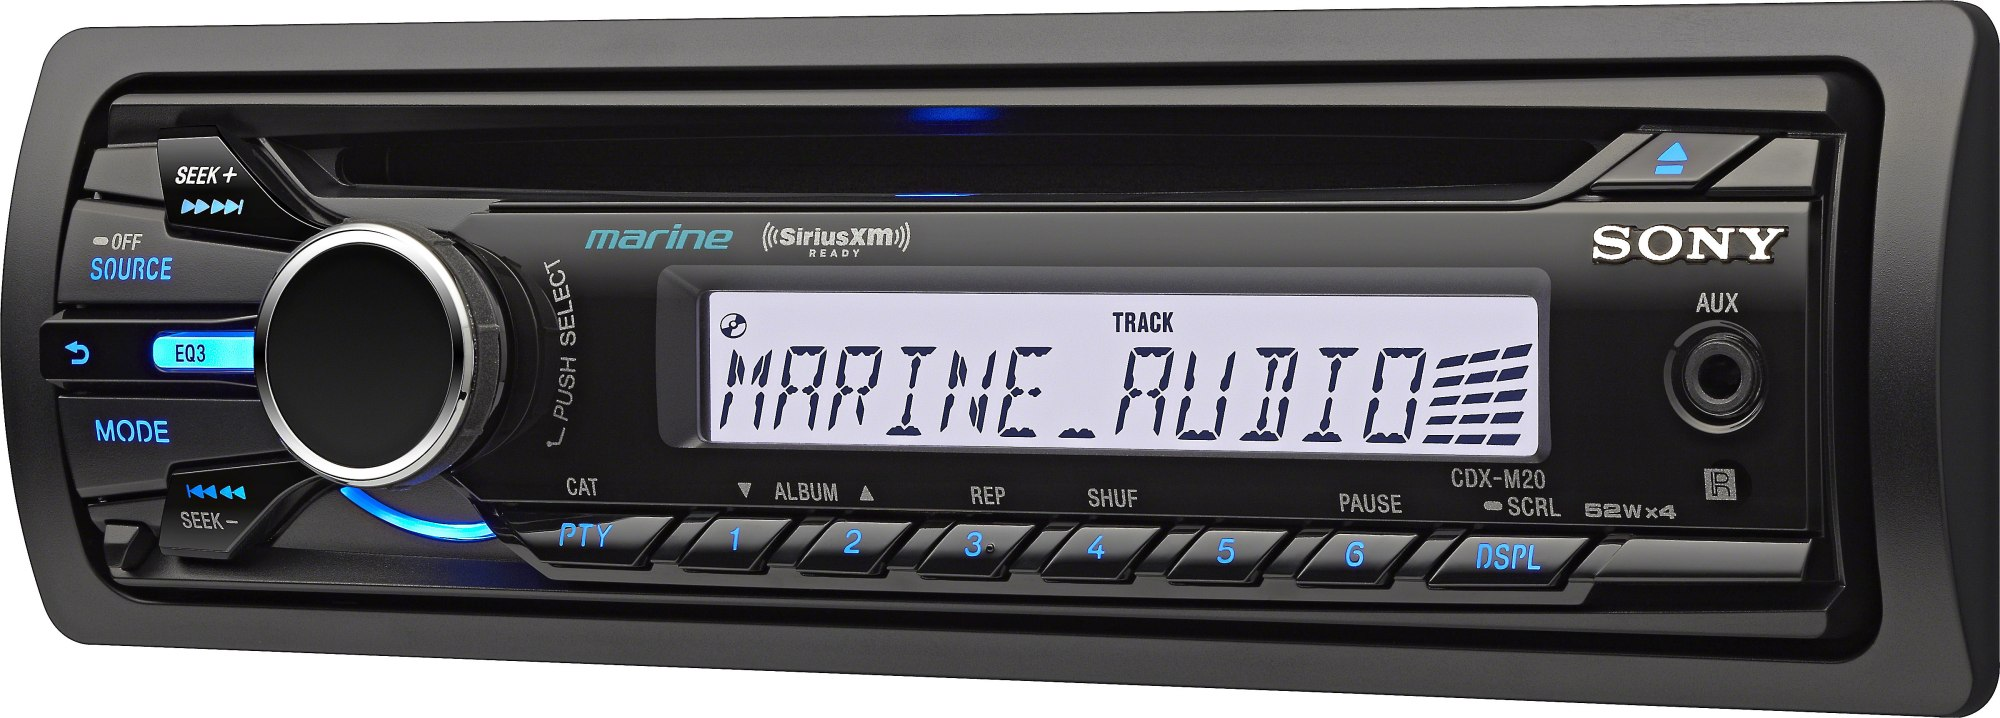 hight resolution of sony cdx m20 marine cd receiver at crutchfield comsony cdx m20 wiring diagram 4